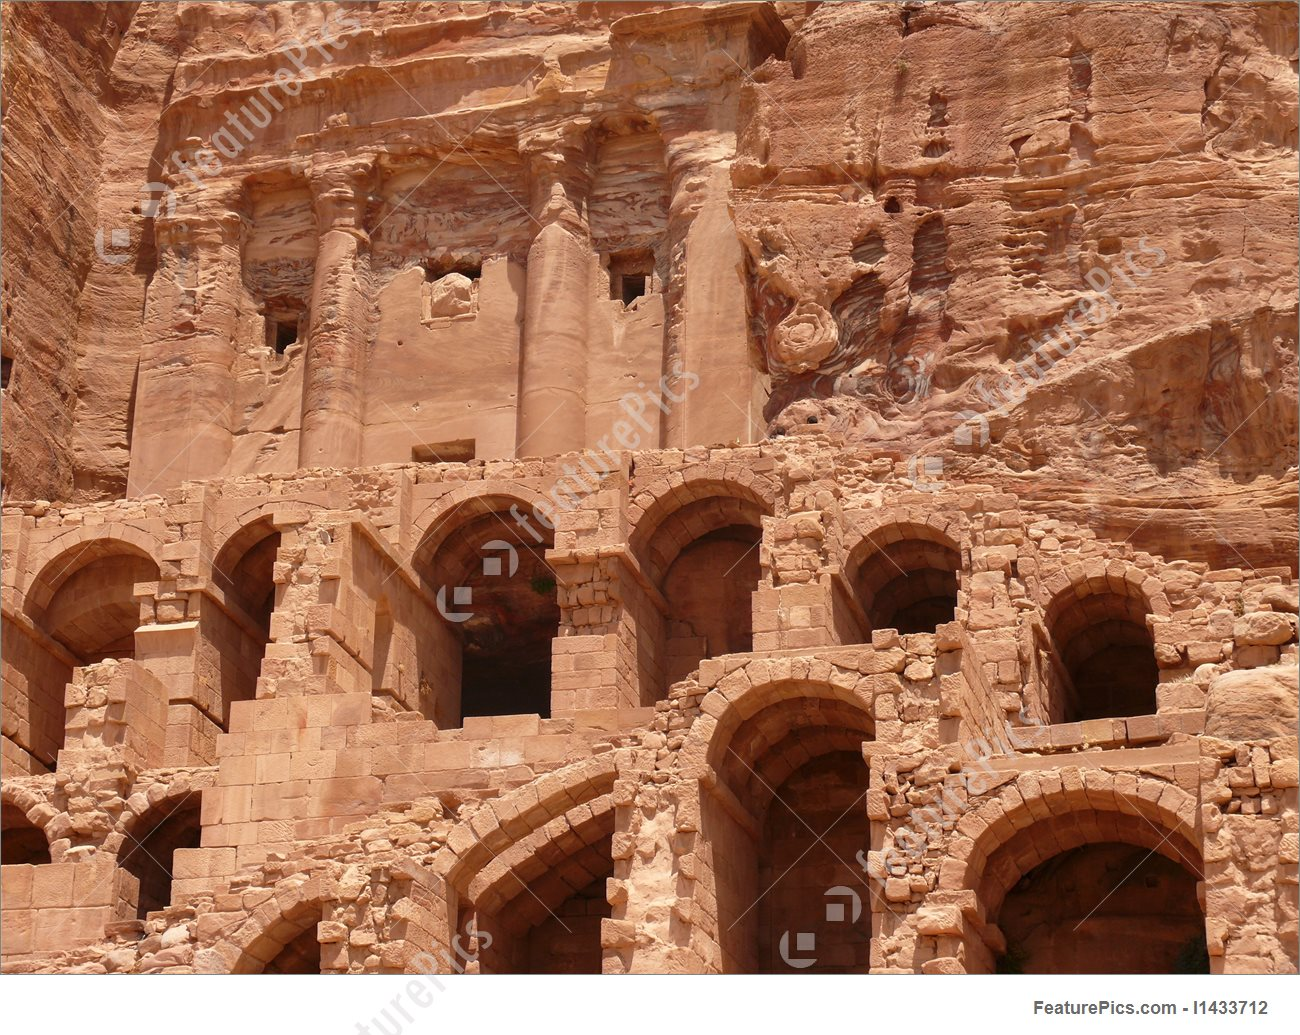 Burial Chambers, Tombs Of Kings, Urn Tomb, Ancient City, Petra.